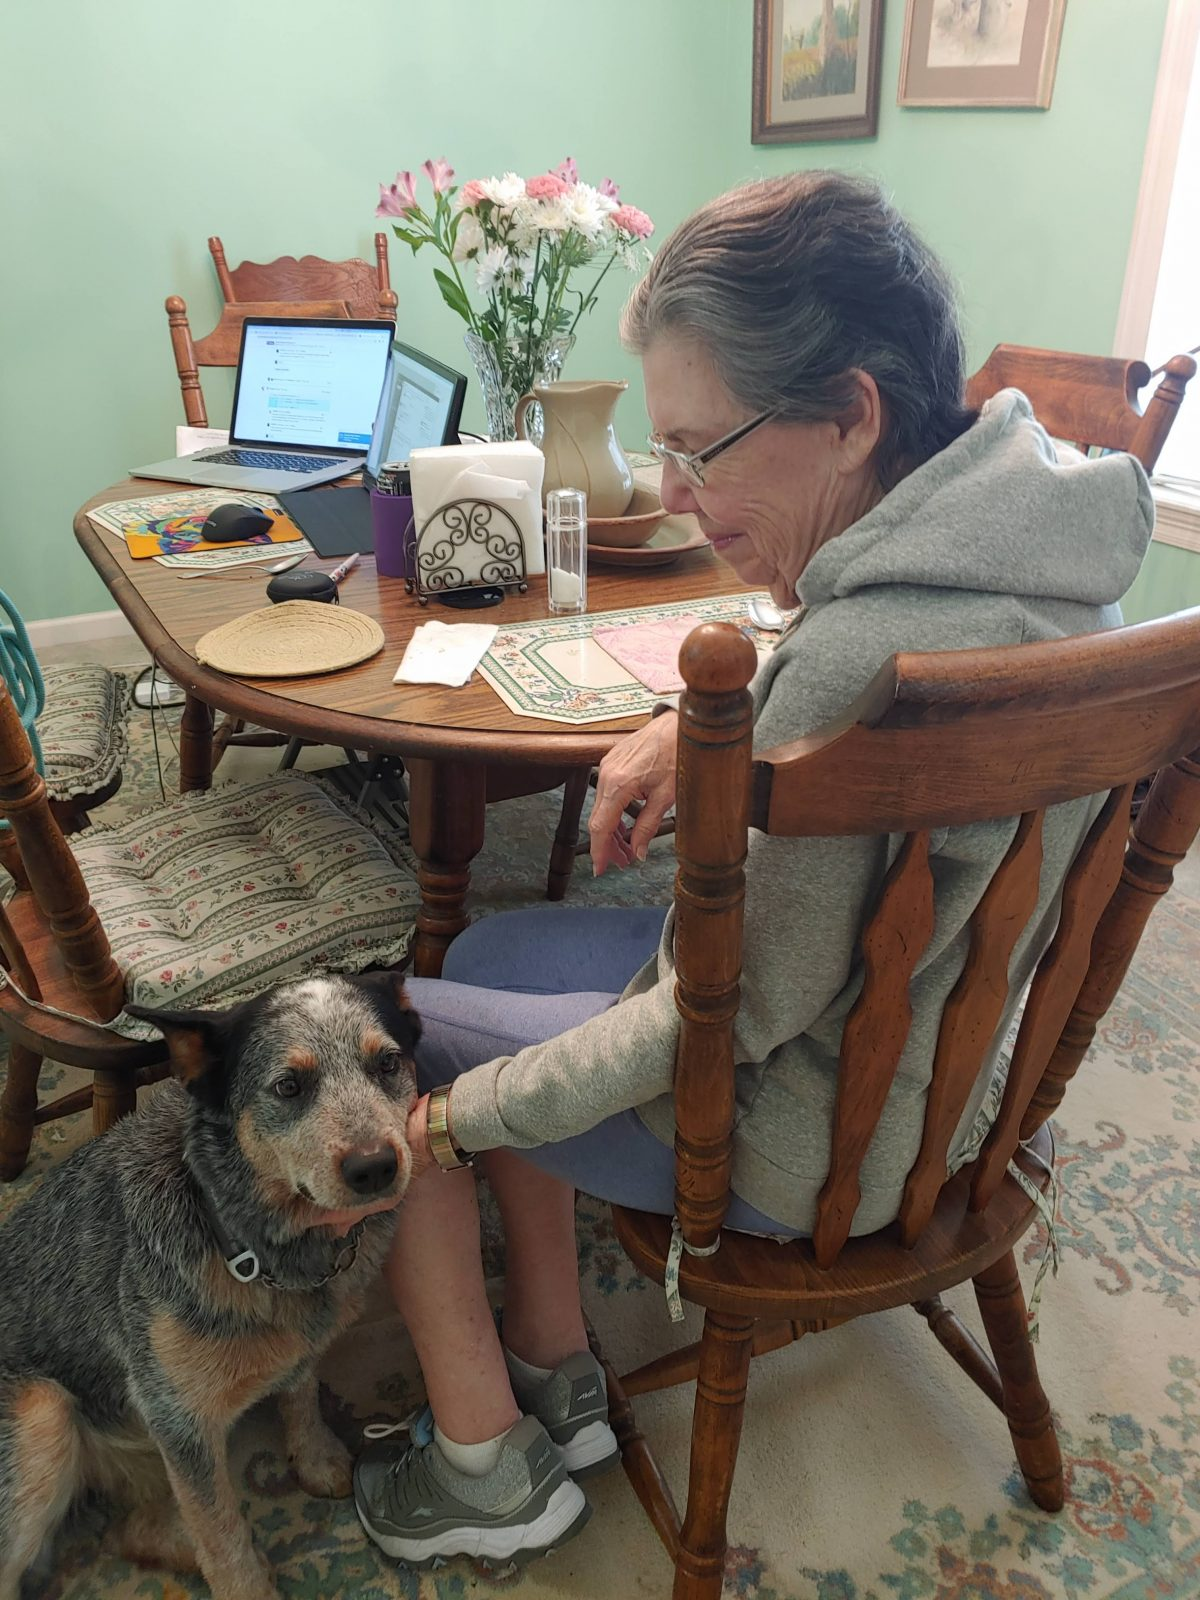 Blue Cattle Dog is petted by senior woman siting at a dining table